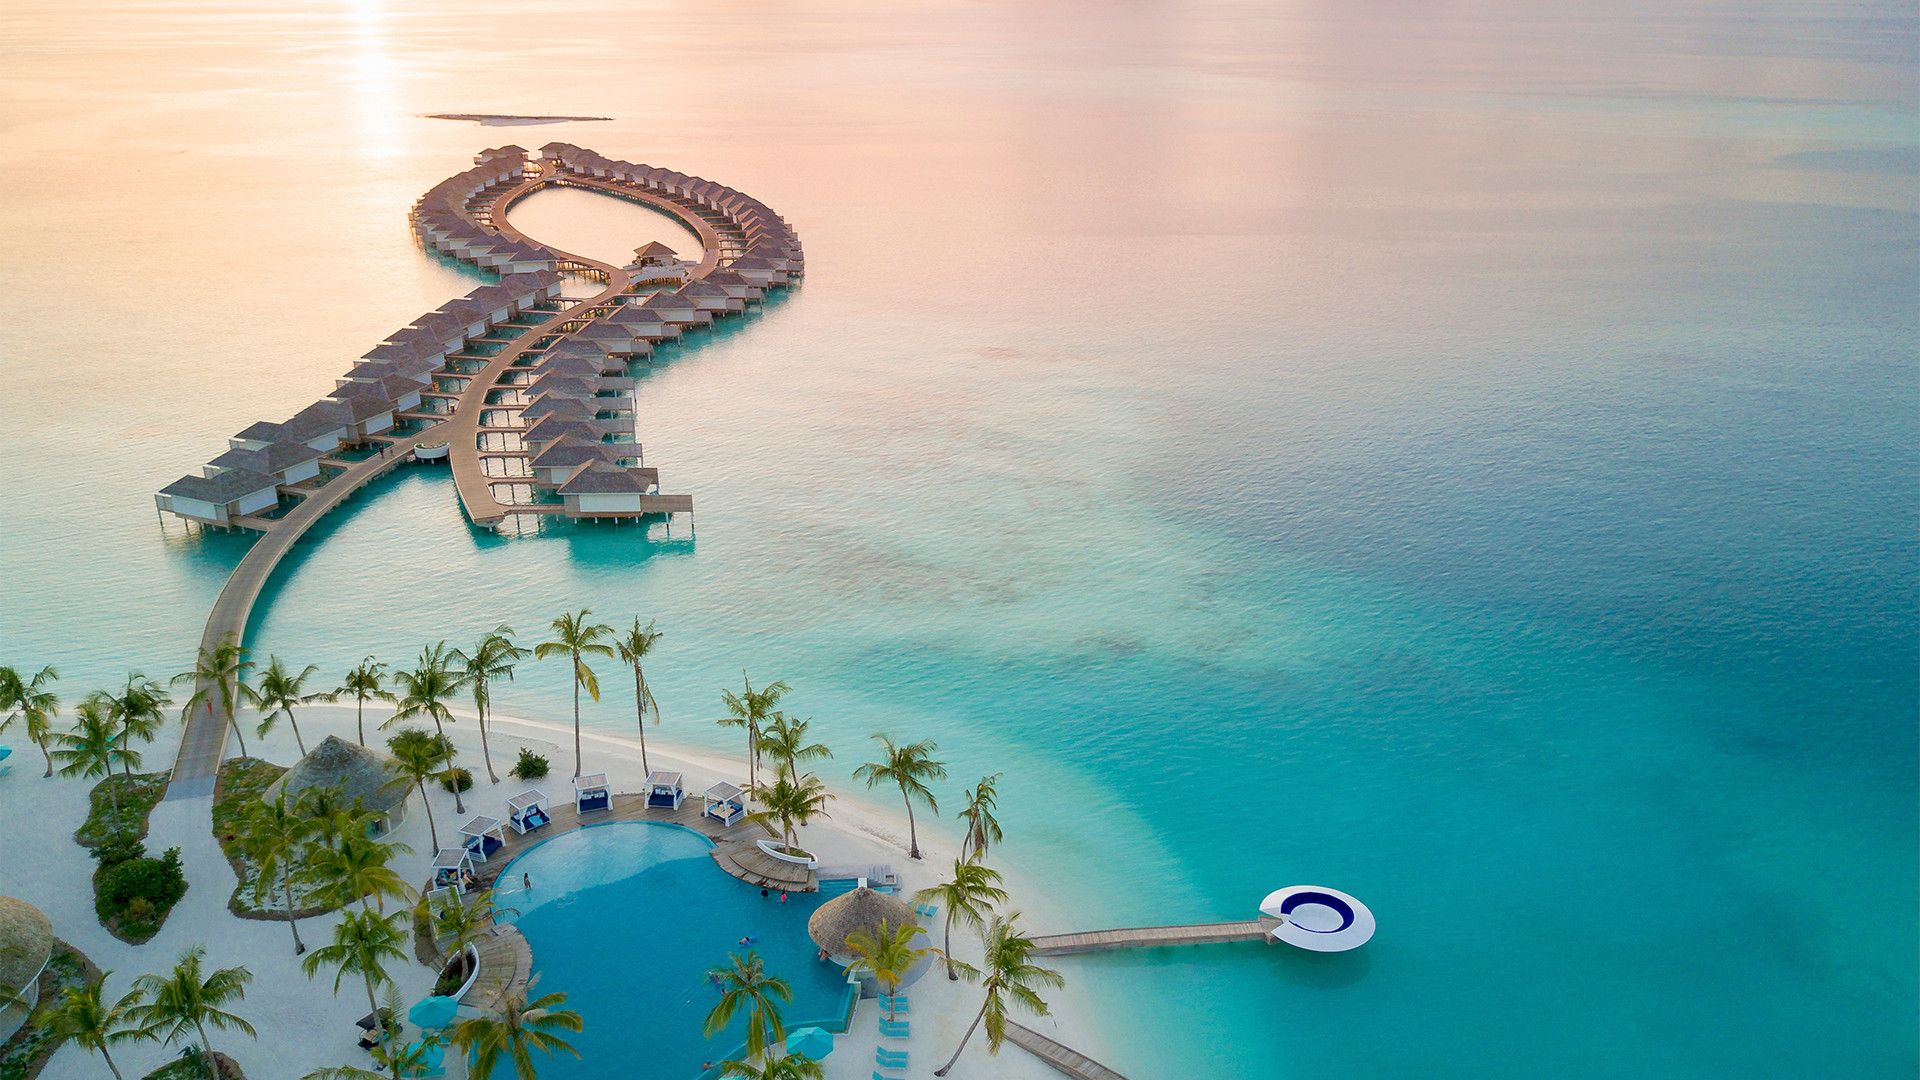 Maldives: 9 best hotels on the islands